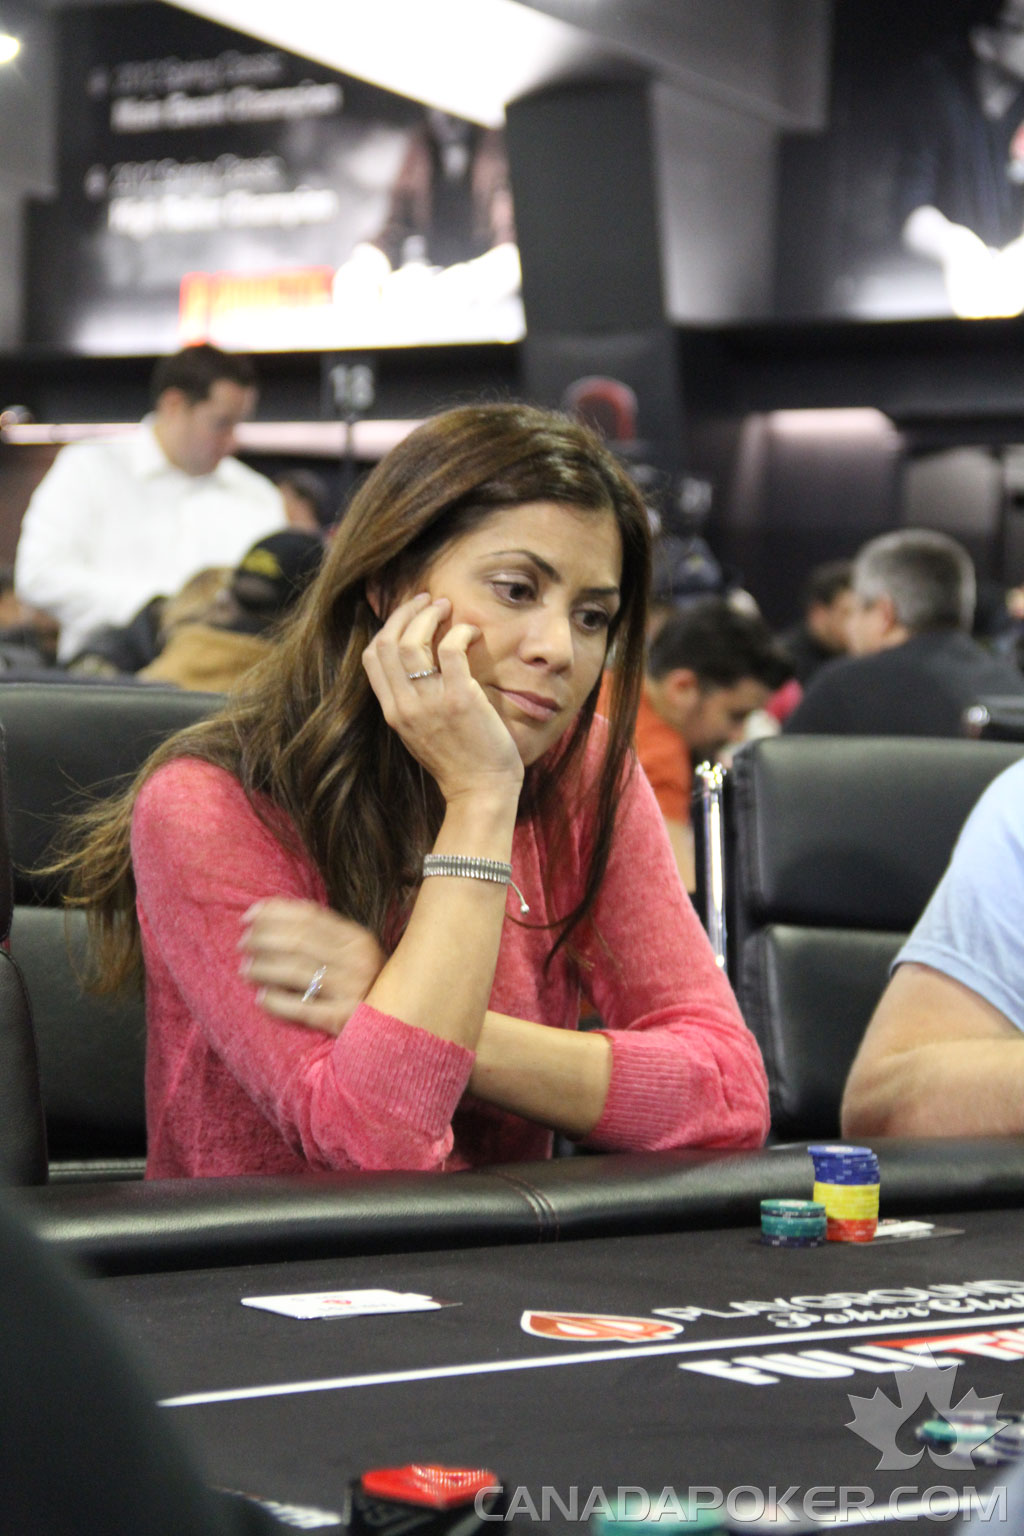 Anne Marie Angelil Canada Poker Canadian Poker News